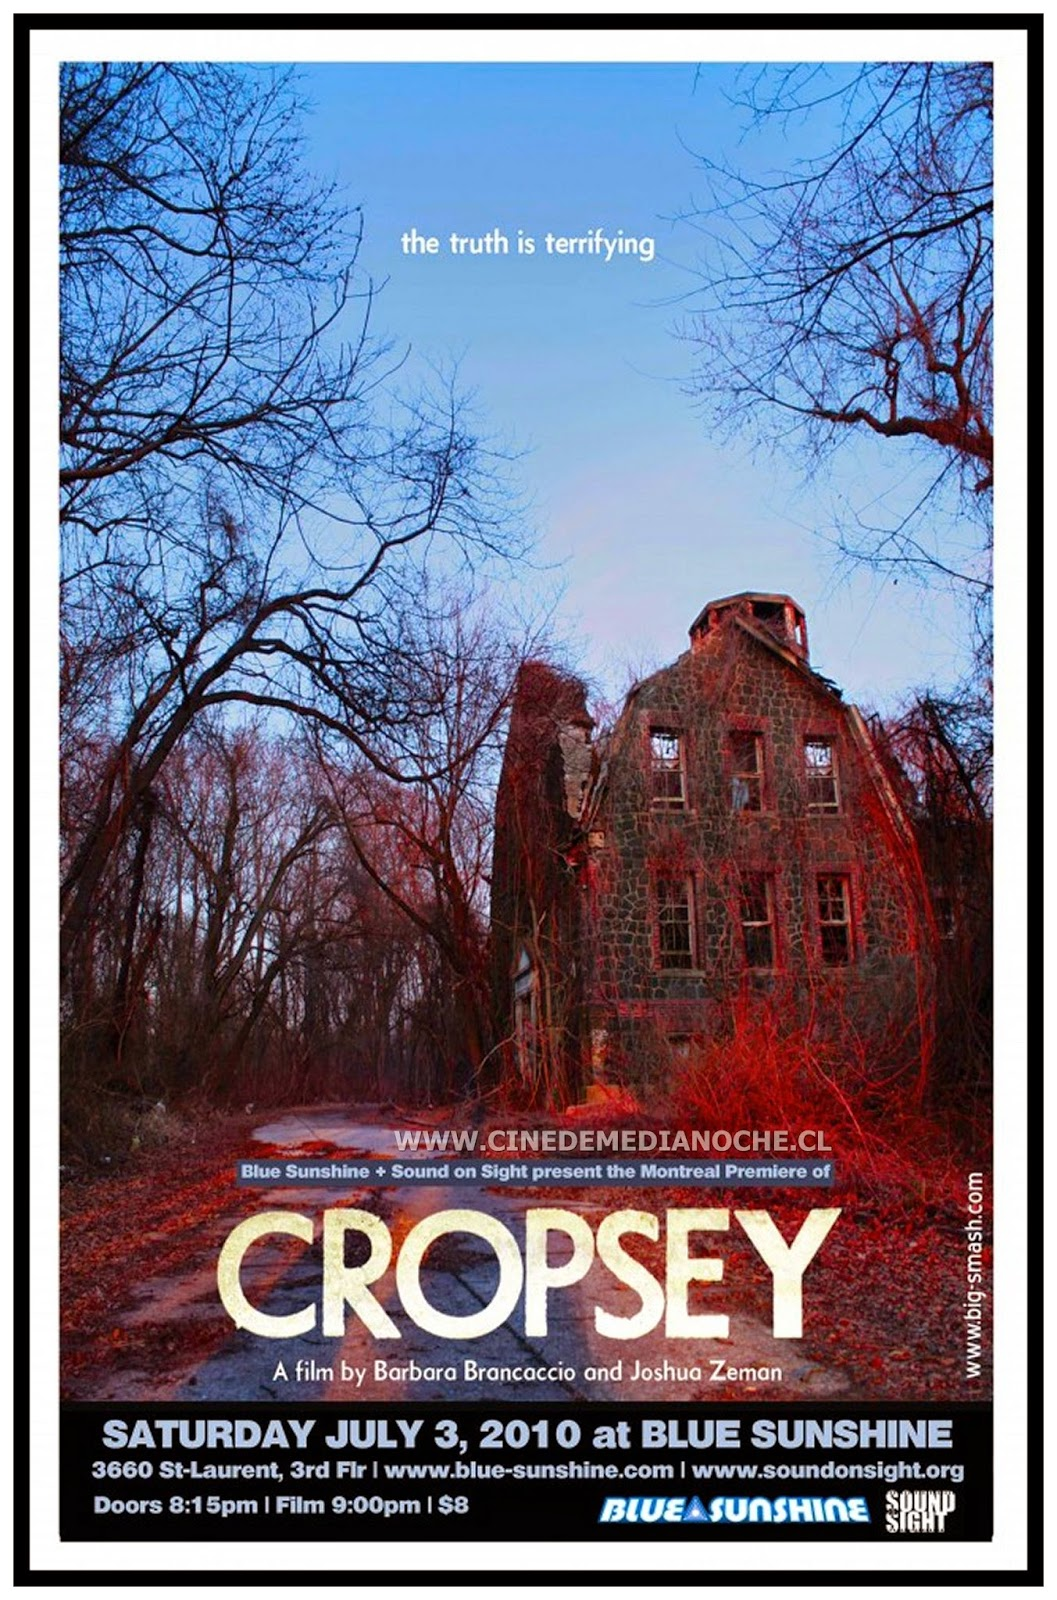 http://www.cinedemedianoche.cl/2016/10/cropsey-2009-documental.html